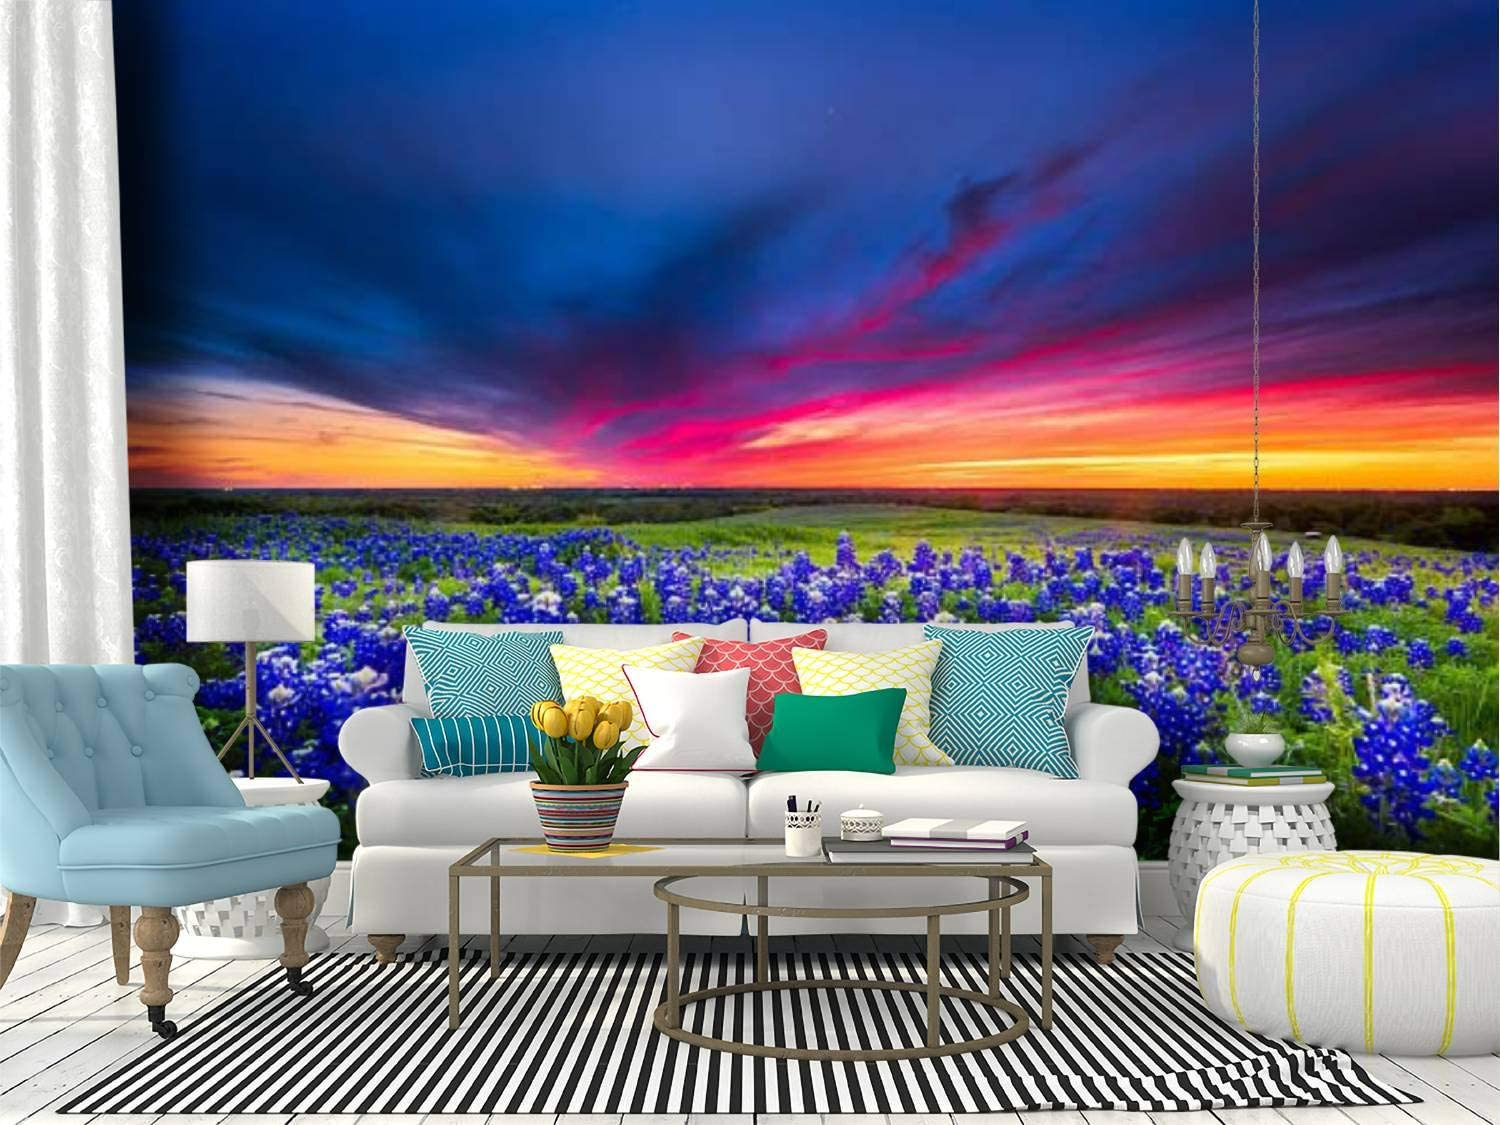 Self Adhesive Wallpaper Roll Paper field of blue flowers on sugar ridge road, ennis, texas spring Removable Peel and Stick Wallpaper Decorative Wall Mural Posters Home Covering Interior Film